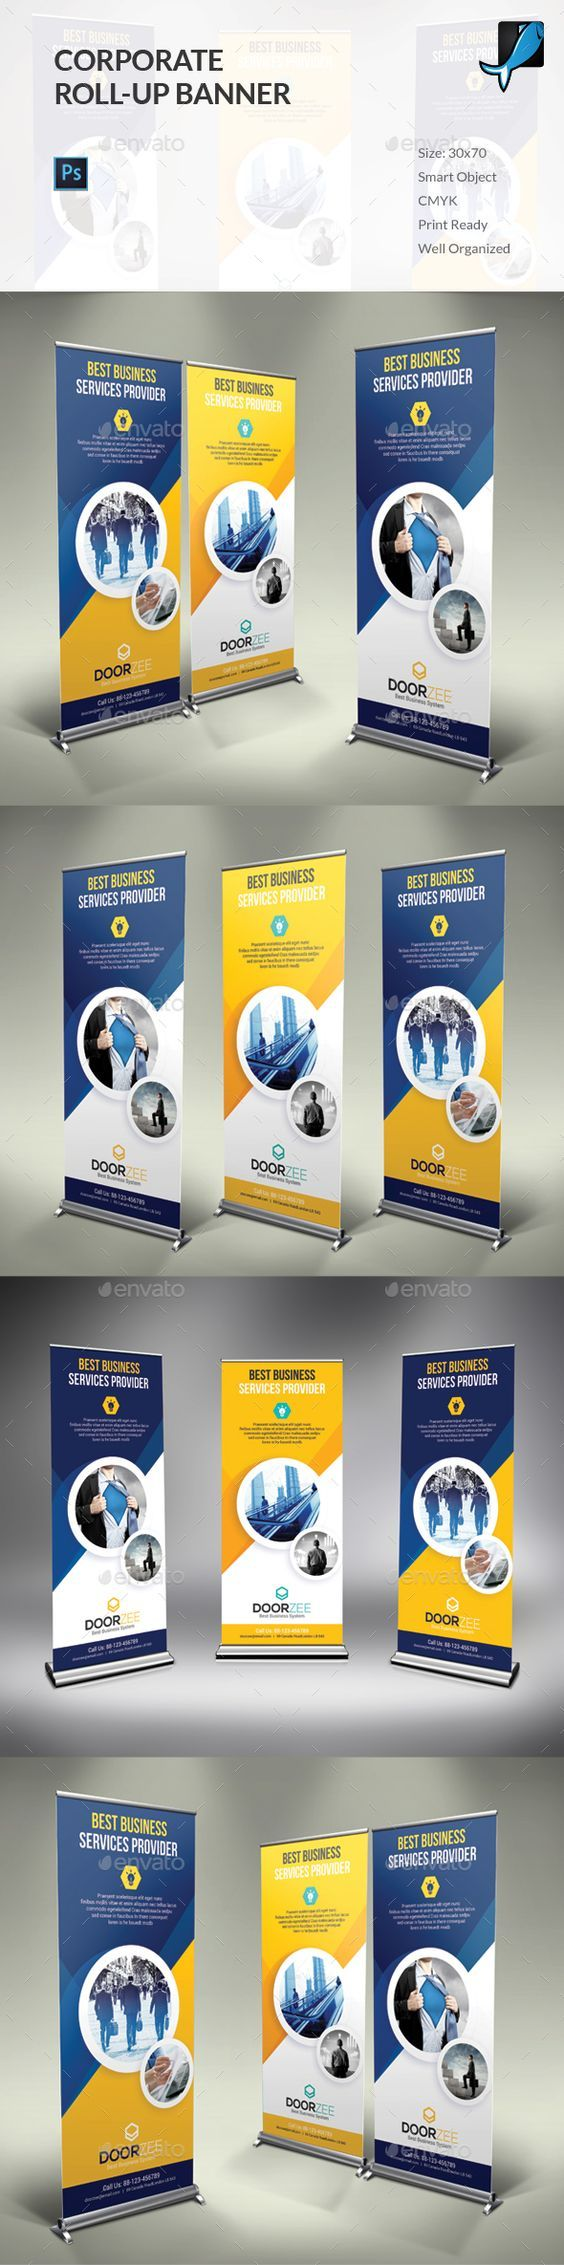 Mansa Print Best Printing and Advertising Company offers best quality of Corporate Rollup Banner.